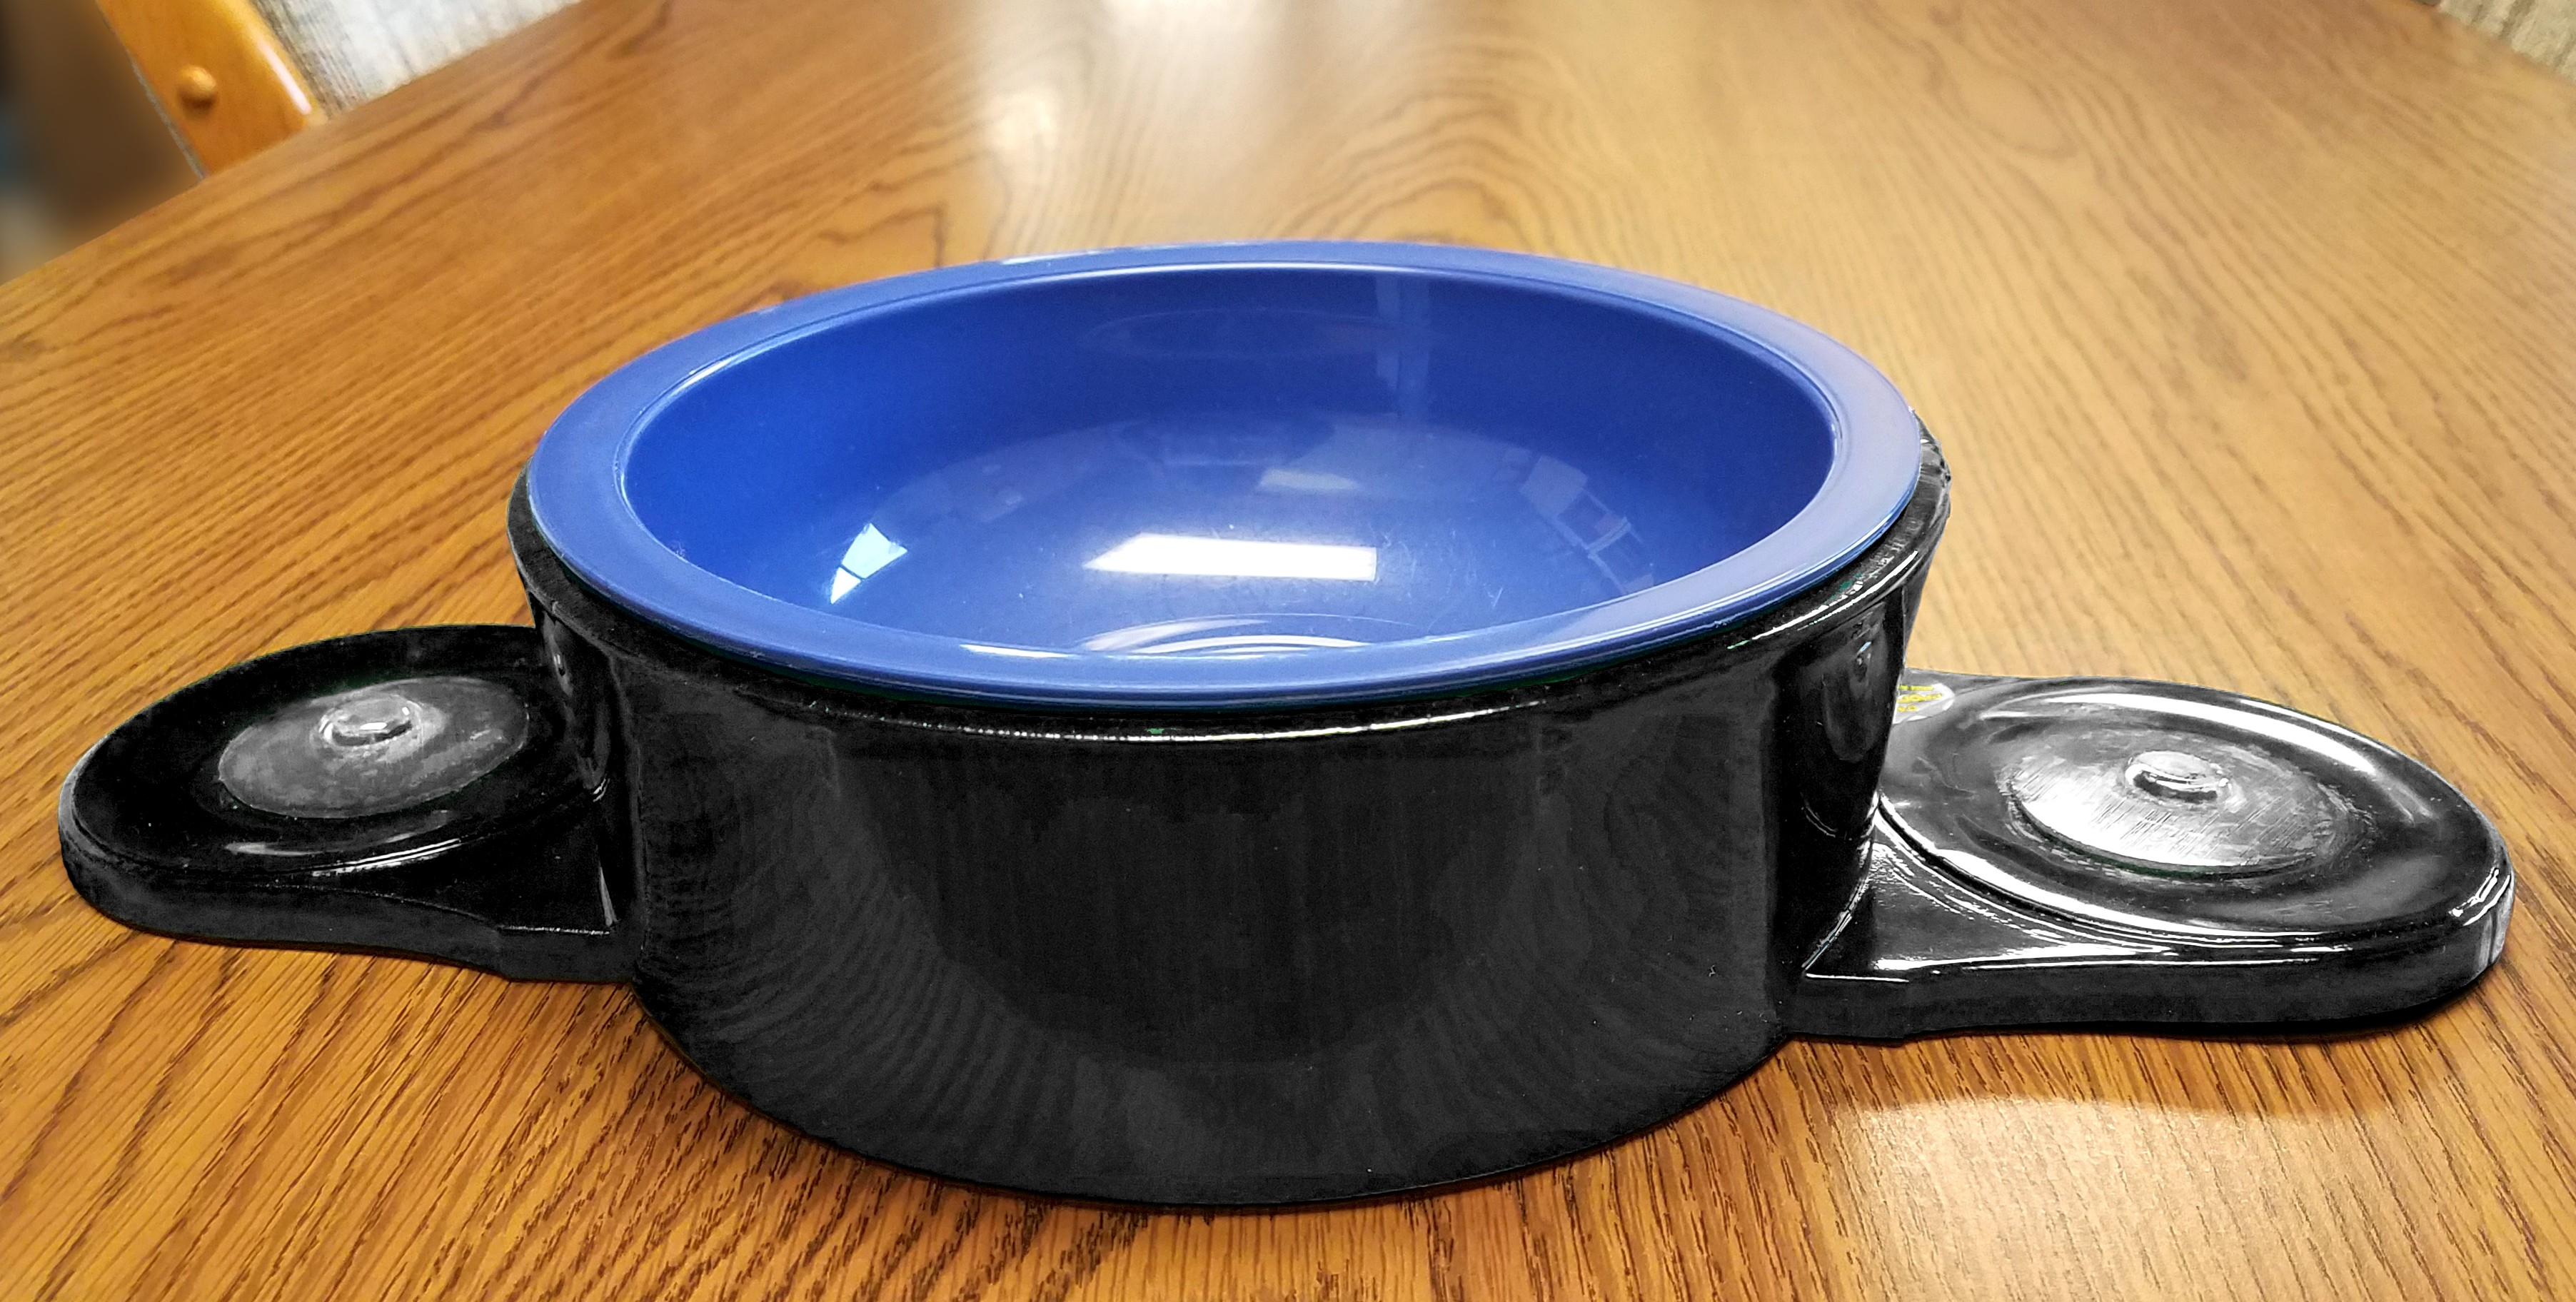 6772 Replacement MiBowl or miPlate